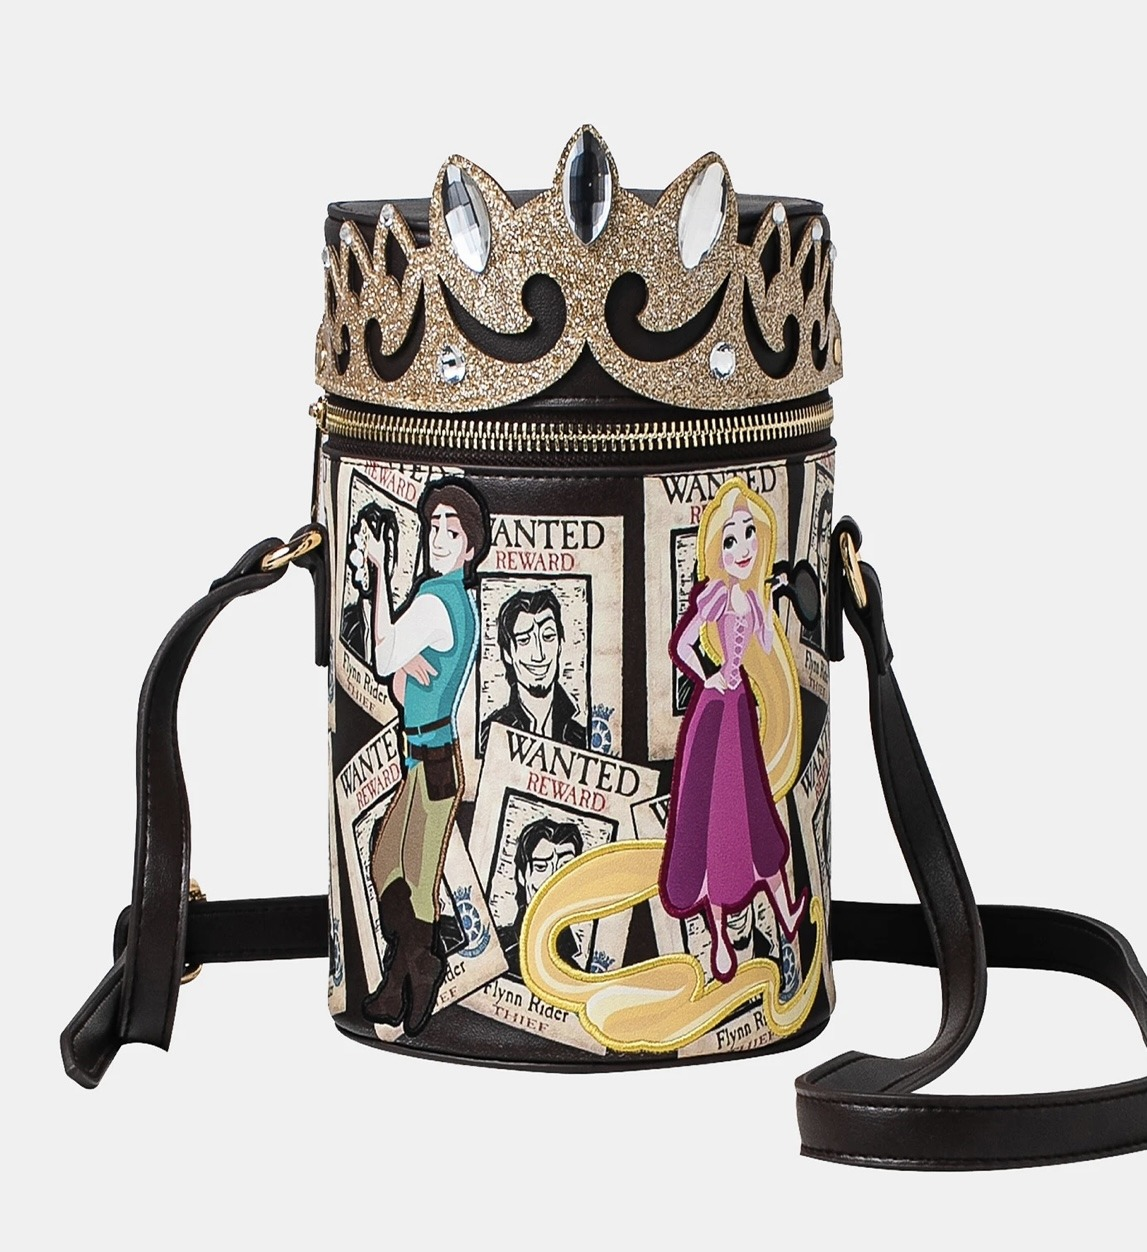 New Tangled Crossbody Bag from Danielle Nicole 2